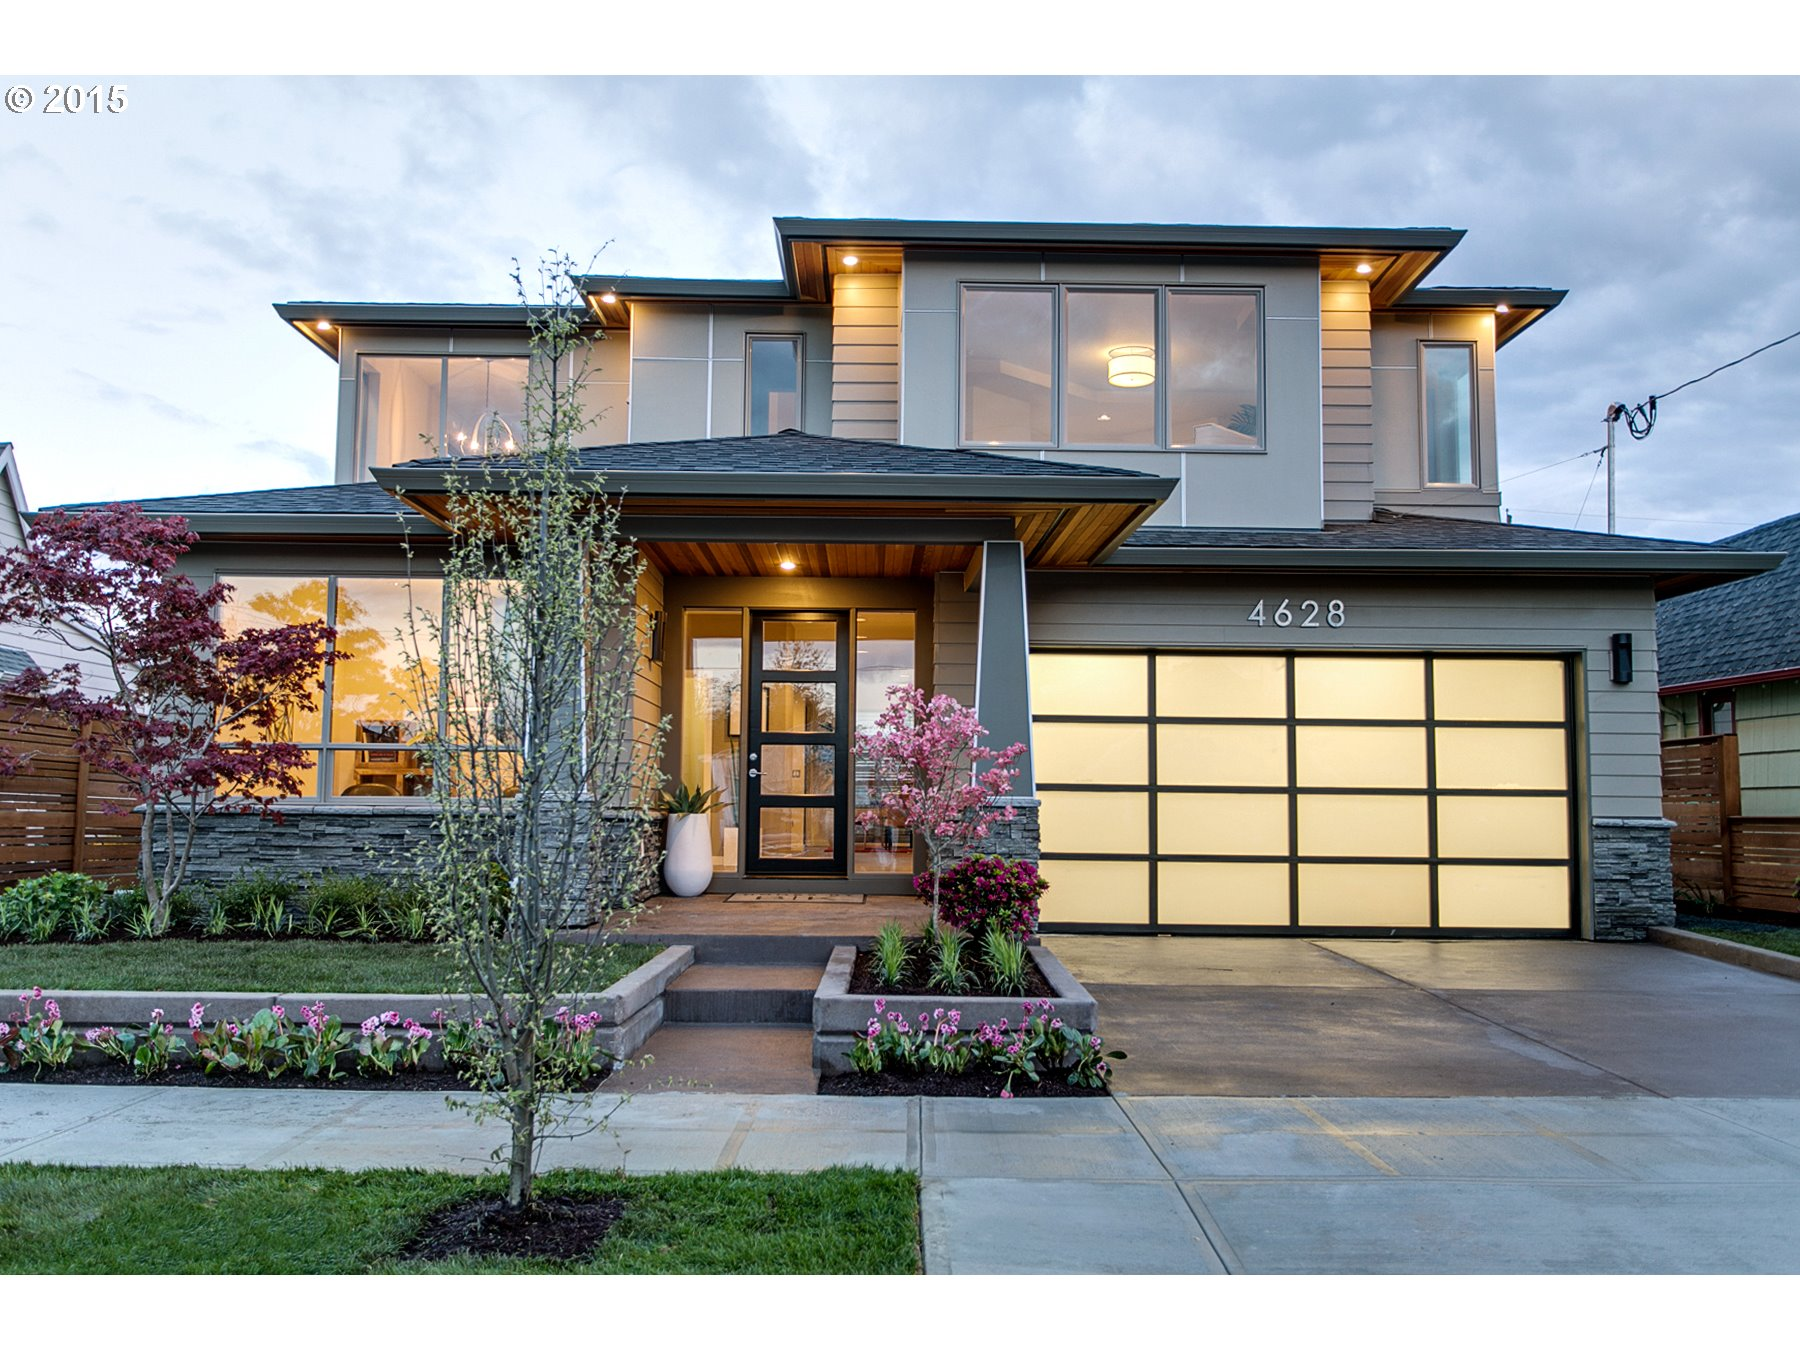 25598 Cheryl Dr, West Linn, OR